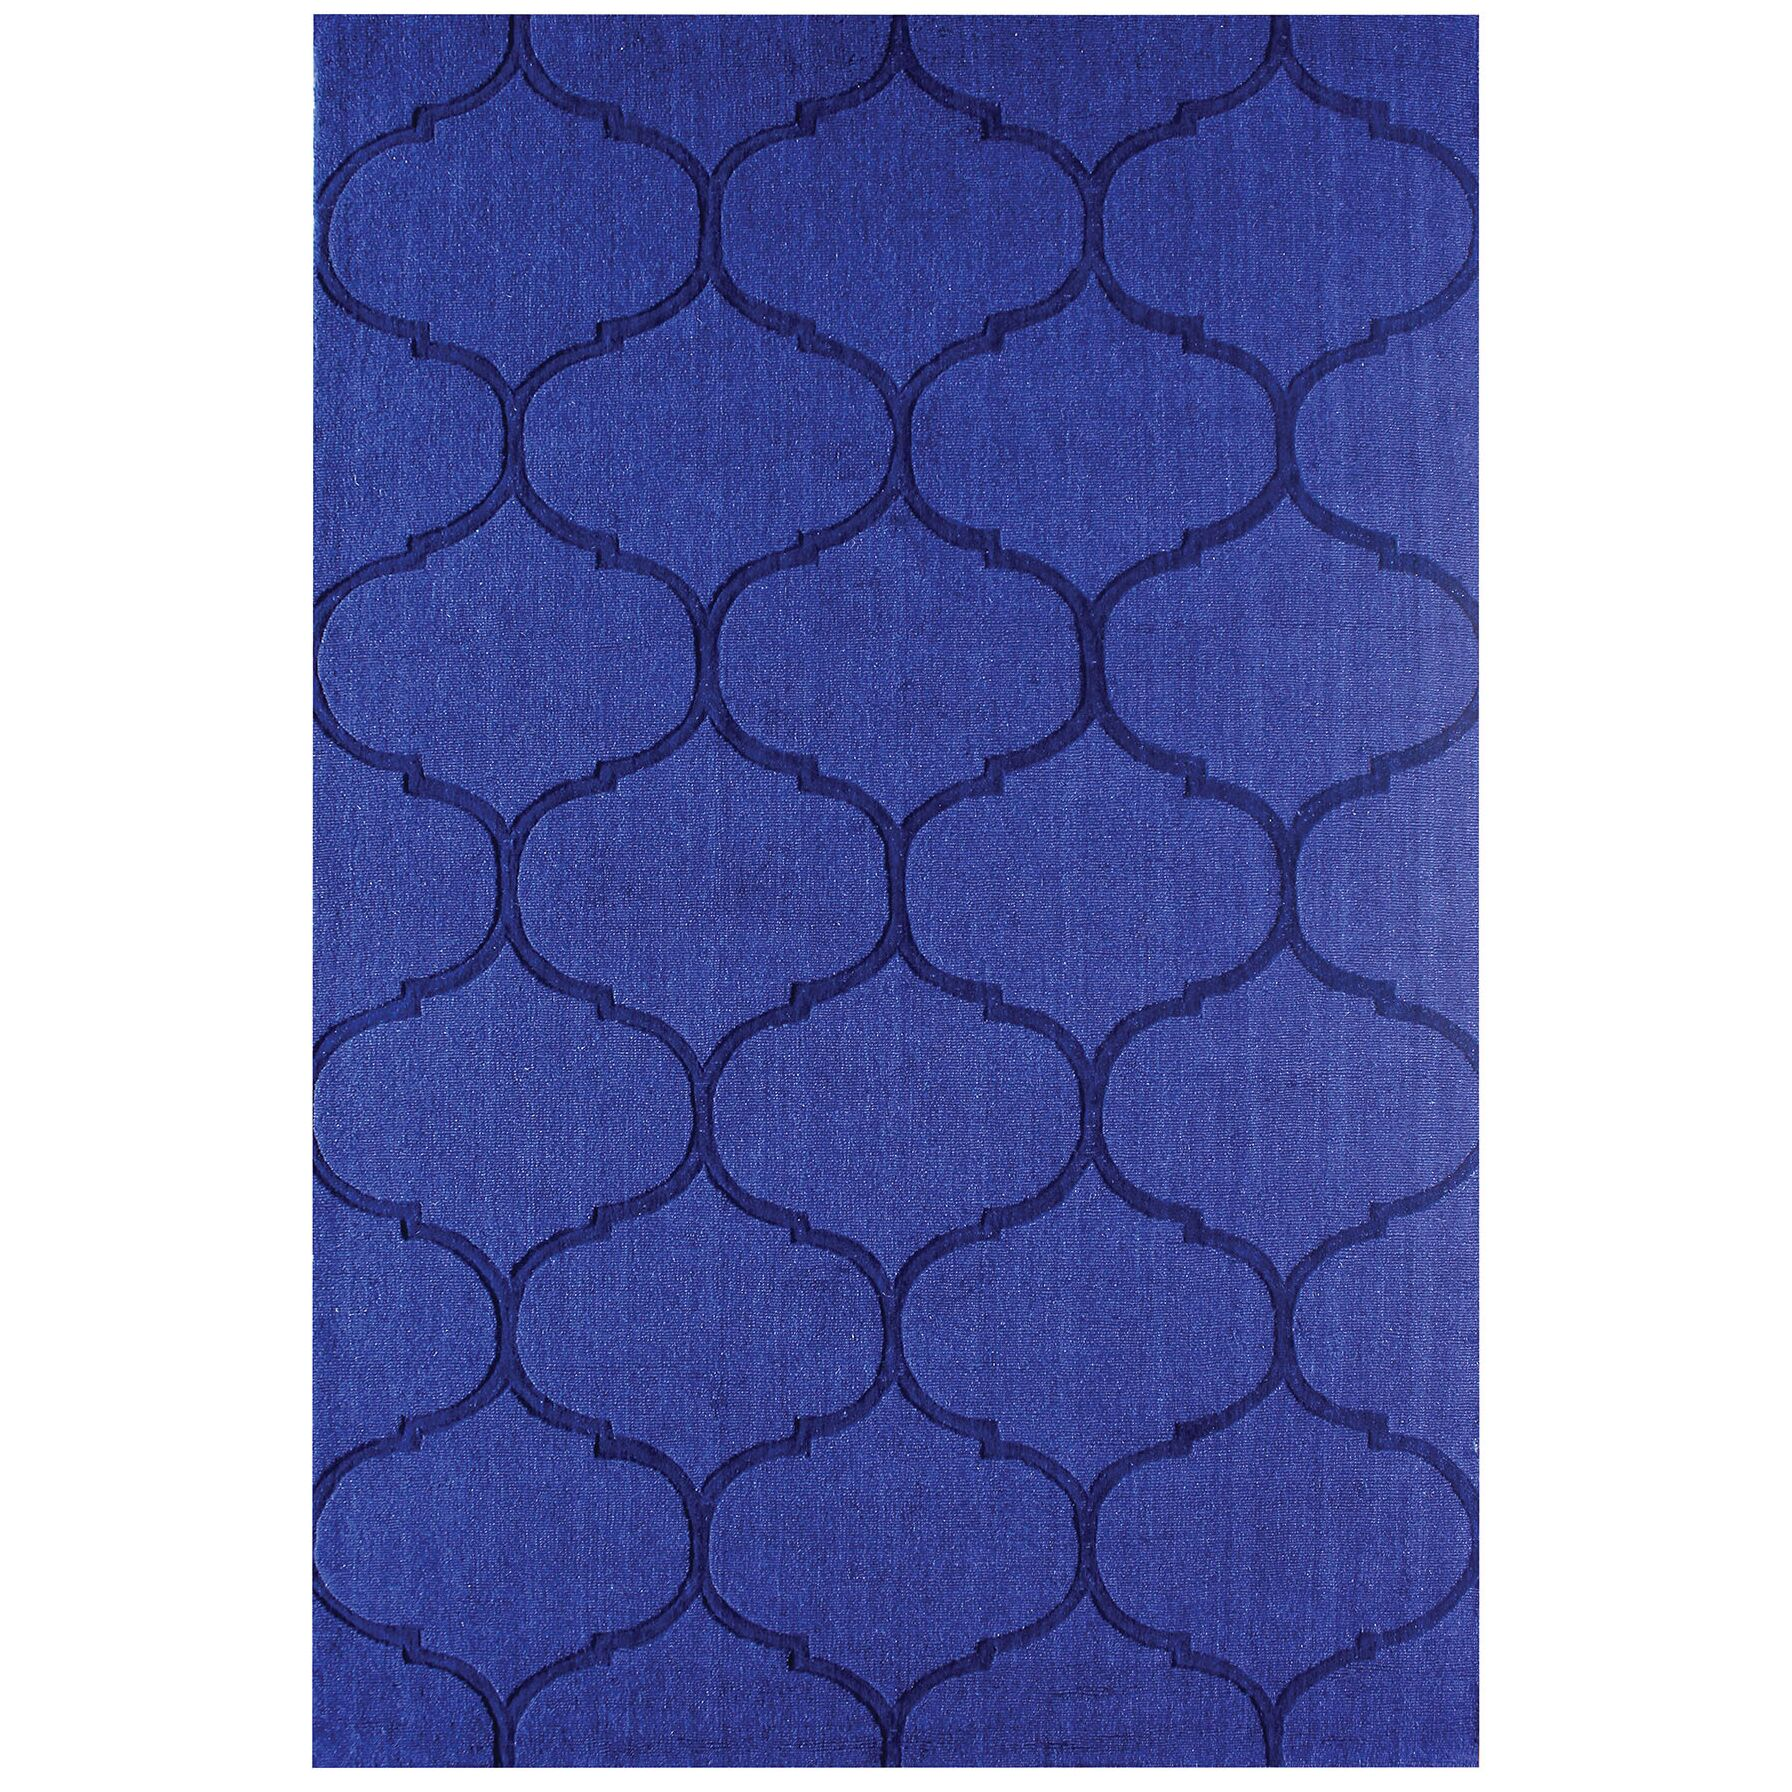 DeMastro Hand-Woven Blue Wool Area Rug Rug Size: Rectangle 9' x 12'